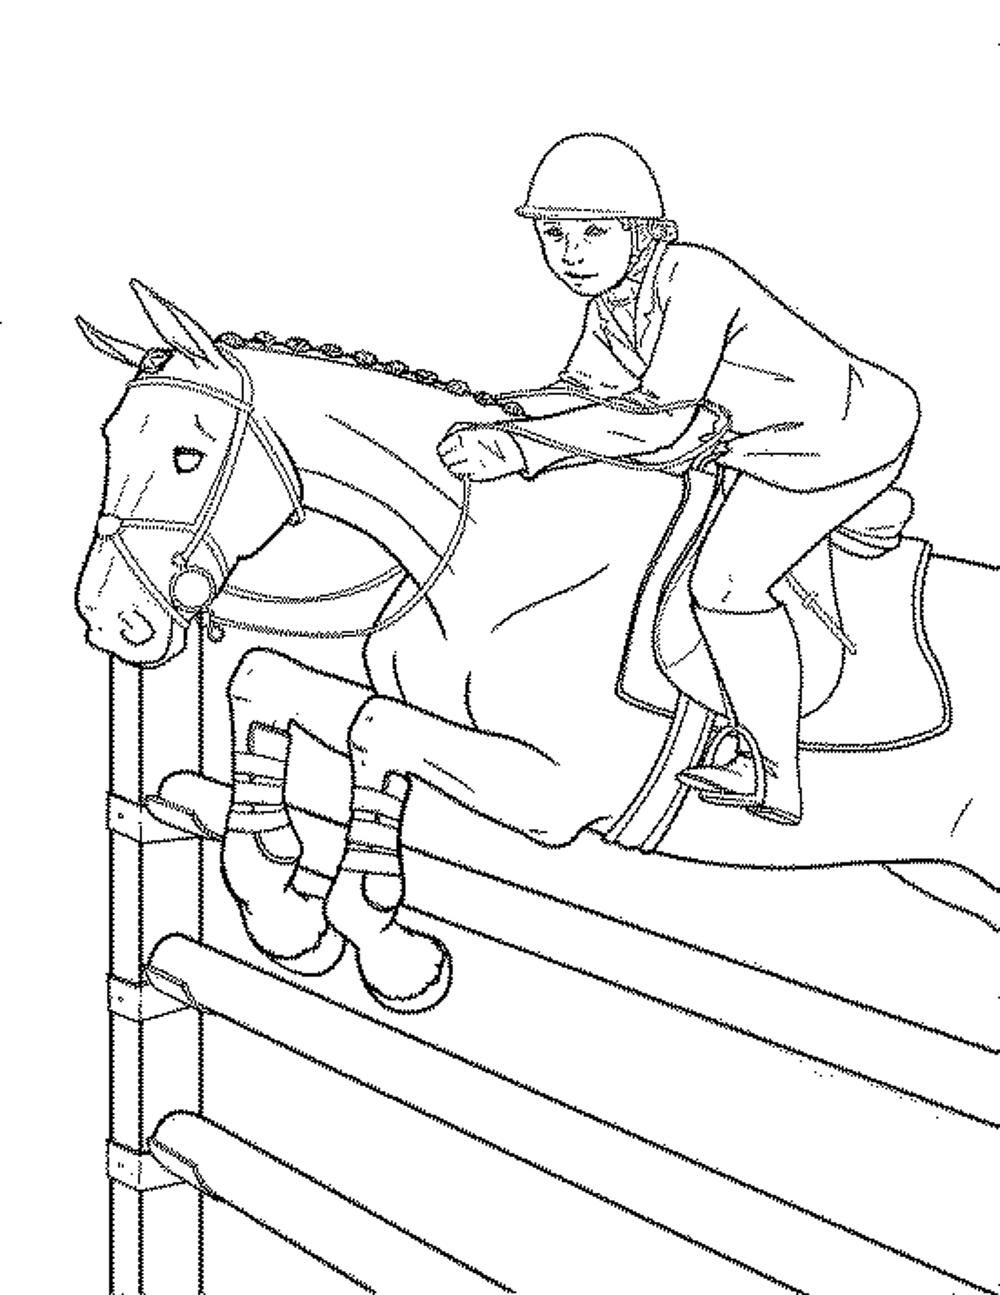 Coloring pages printable horse - Horse Coloring Pages For Girls Printable Kids Colouring Pages